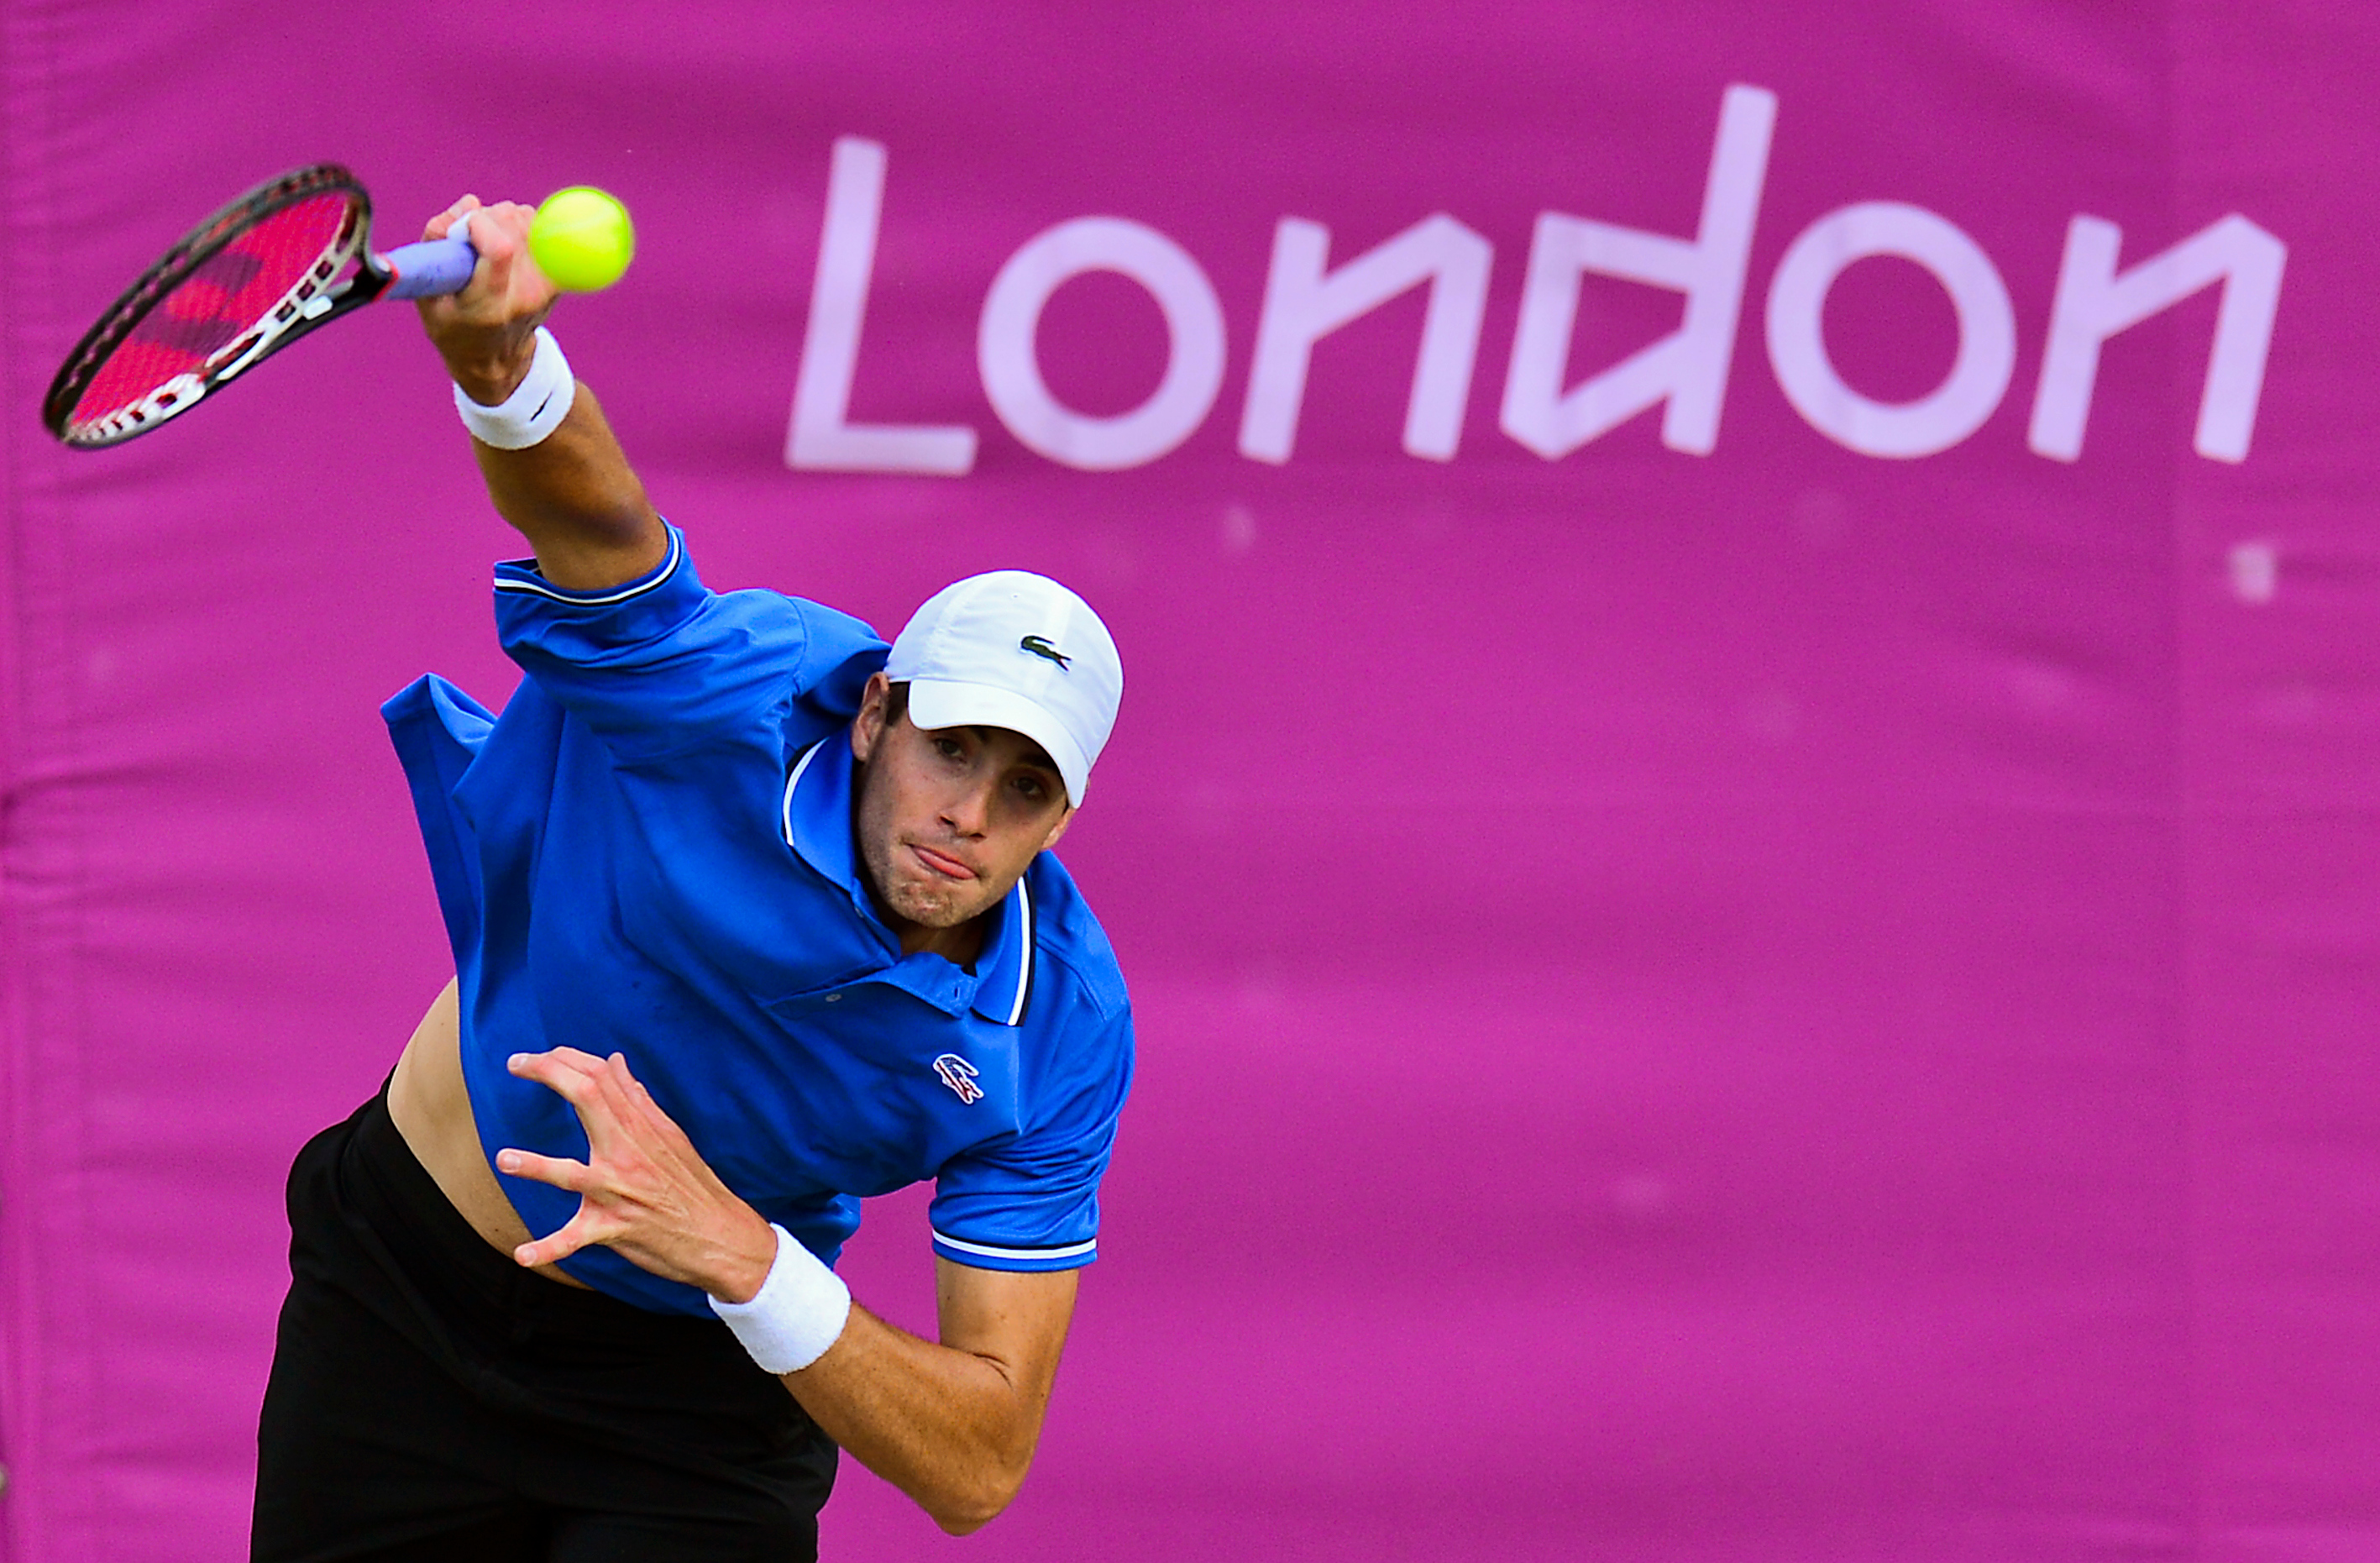 John Isner of the US serves the ball to Serbia's Janko Tipsarevic during their men's single tennis match Third round at the London 2012 Olympic Games in London on August 1, 2012. AFP PHOTO/Luis Acosta (Photo credit should read LUIS ACOSTA/AFP/GettyImages)